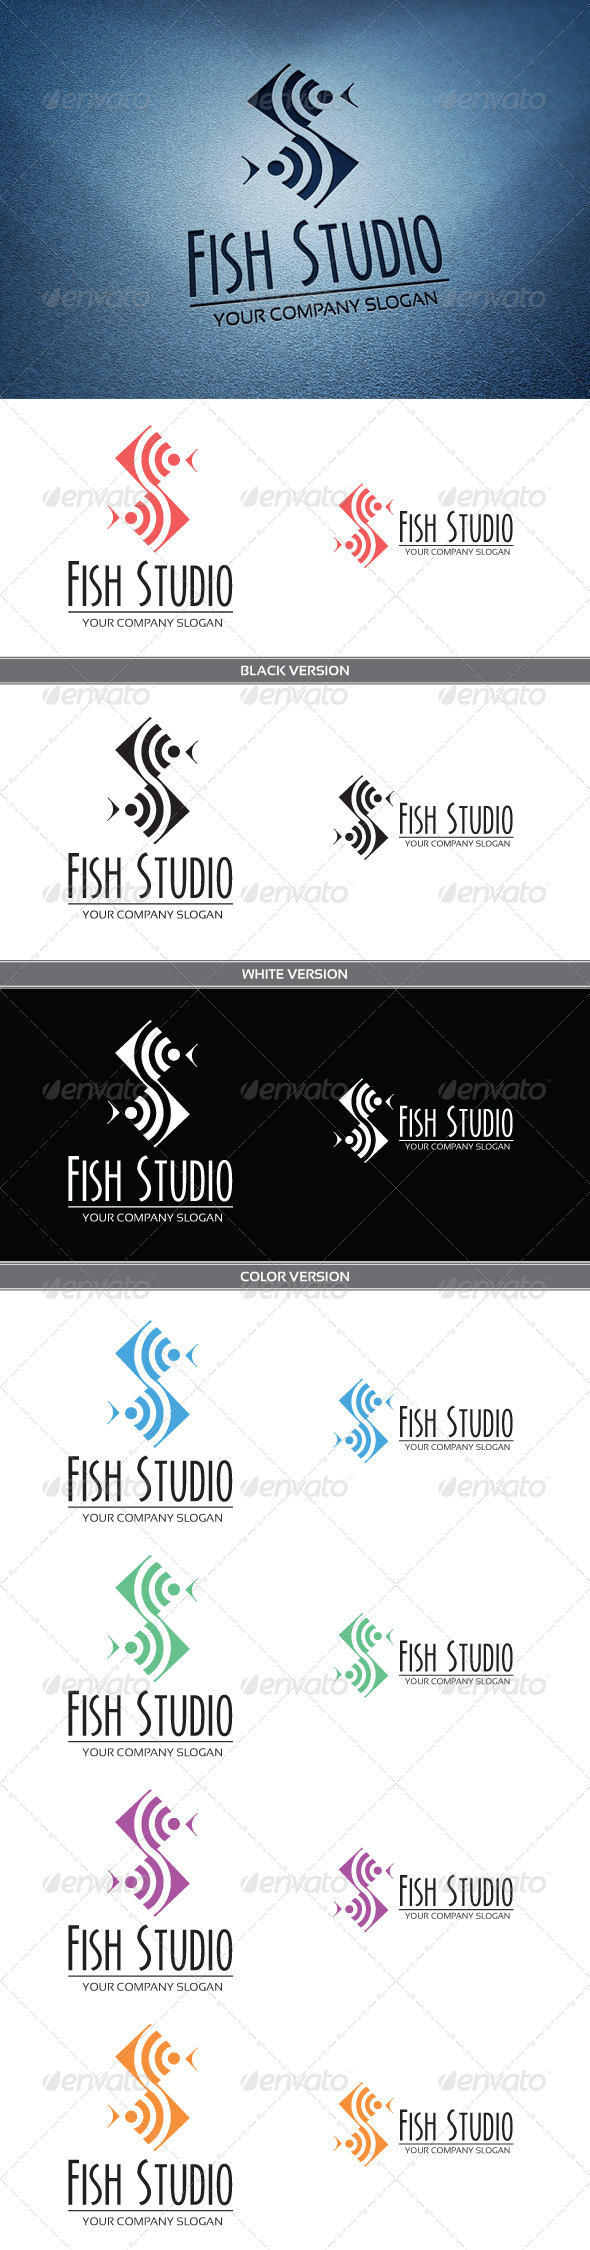 GraphicRiver Fish Studio Logo 3809373